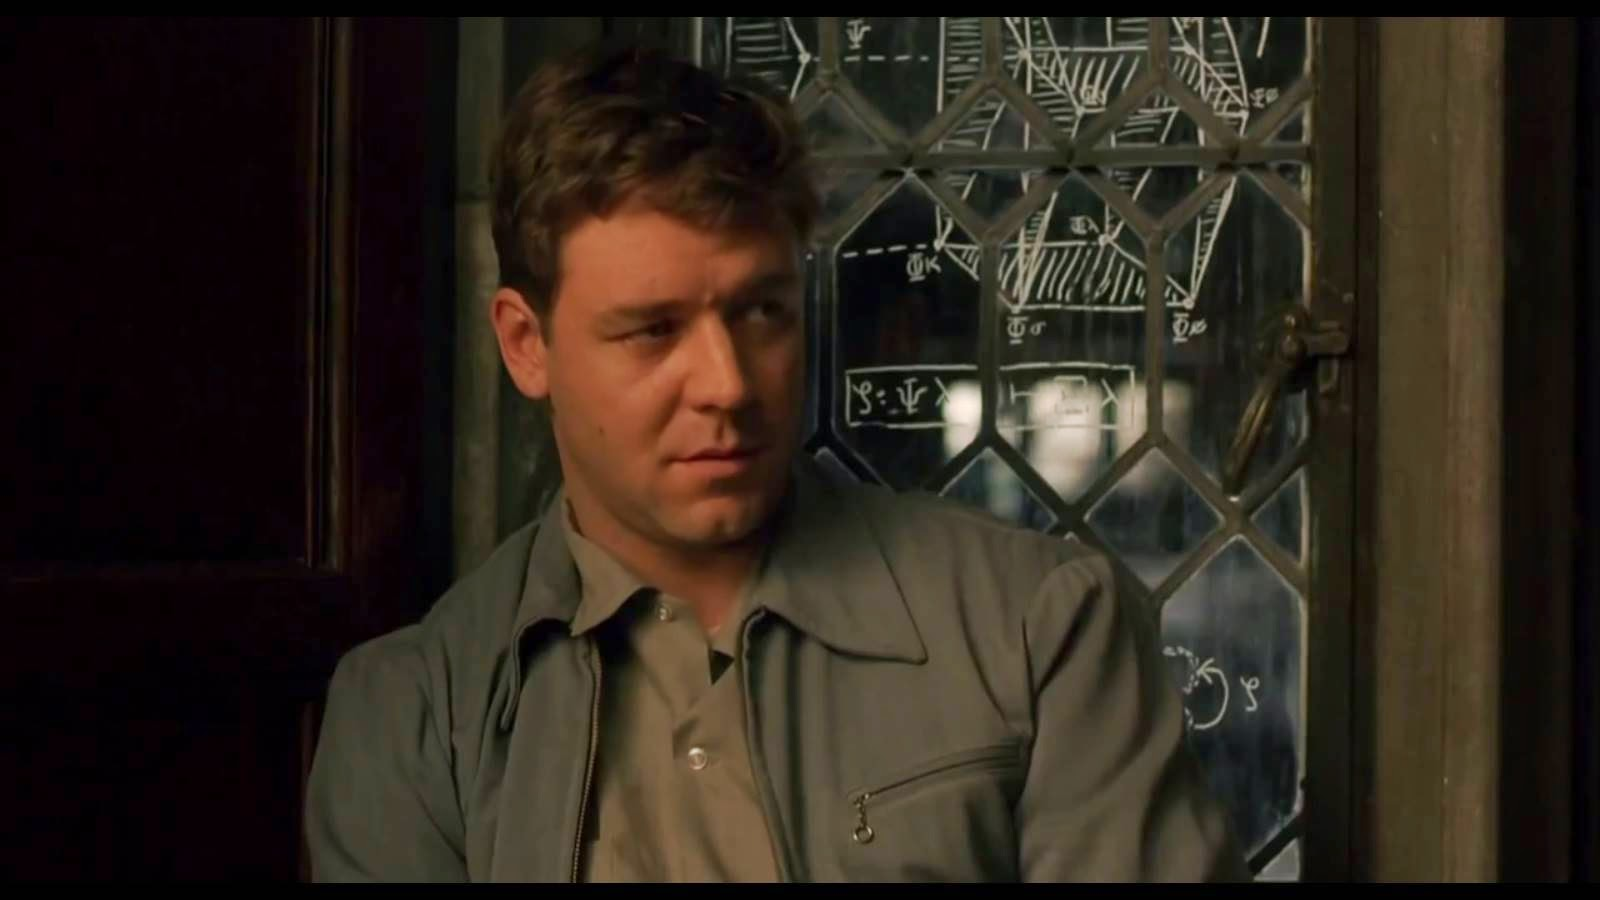 a beautiful mind Watch a beautiful mind (2001) full movie online free, download free movies torrent 720p 1080p from the heights of notoriety to the depths of depravity, john forbes nash, jr experienc.